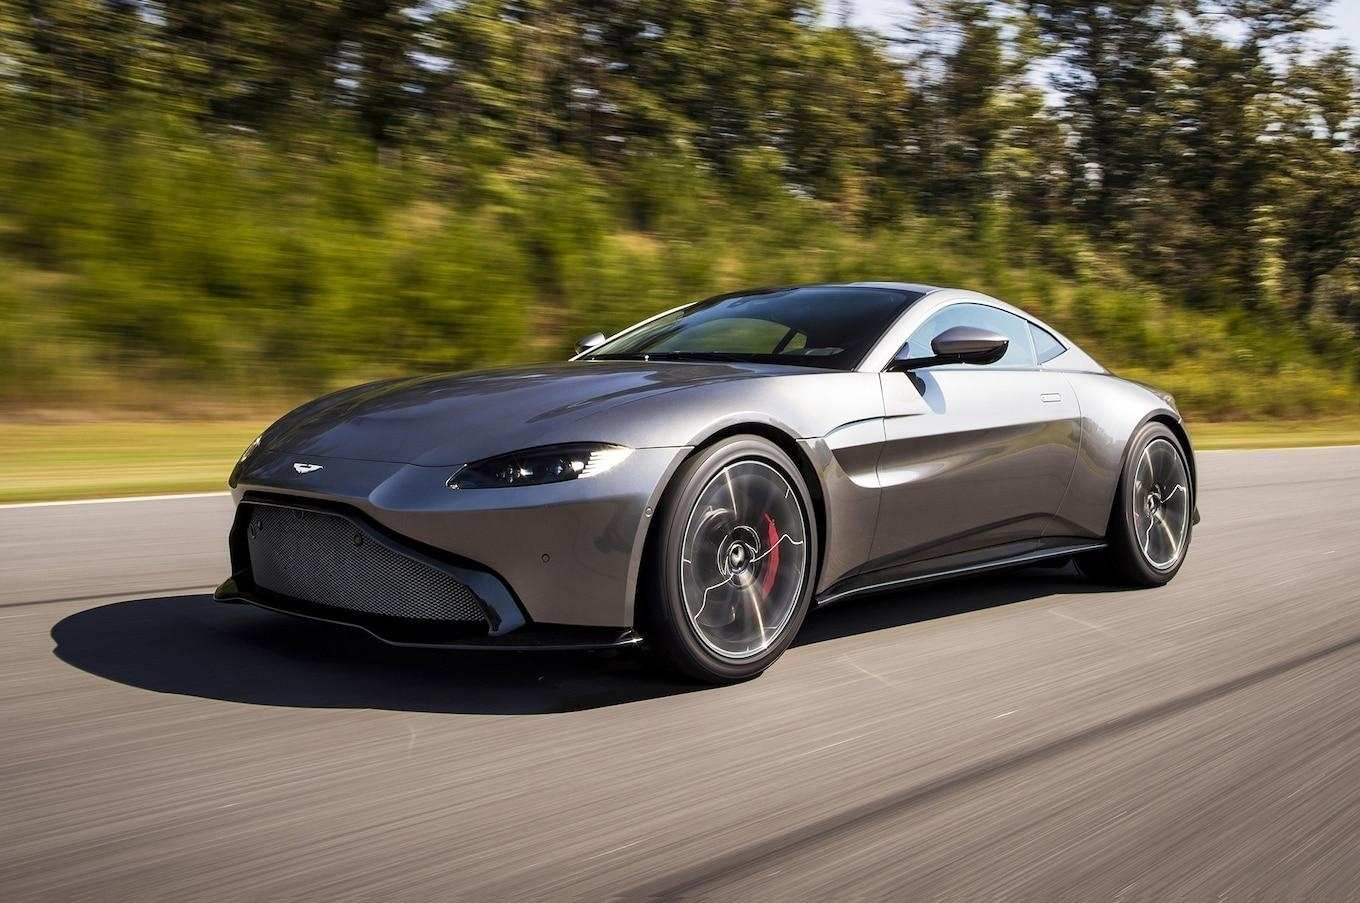 15 Best Review 2019 Aston Martin Db9 Performance and New Engine by 2019 Aston Martin Db9